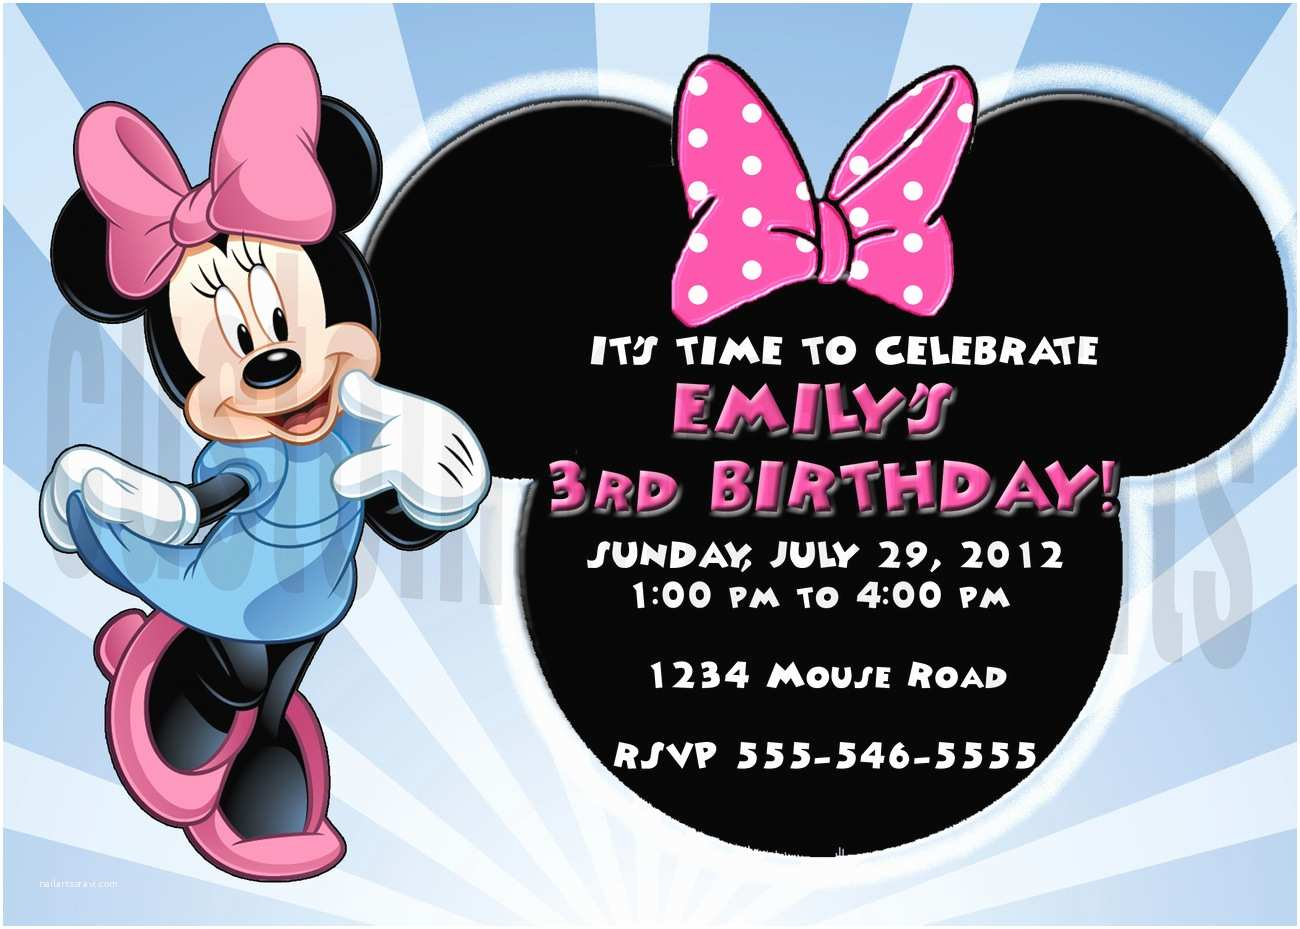 Minnie Mouse Birthday Invitations Personalized Personalized Minnie Mouse Birthday Invitation Digital